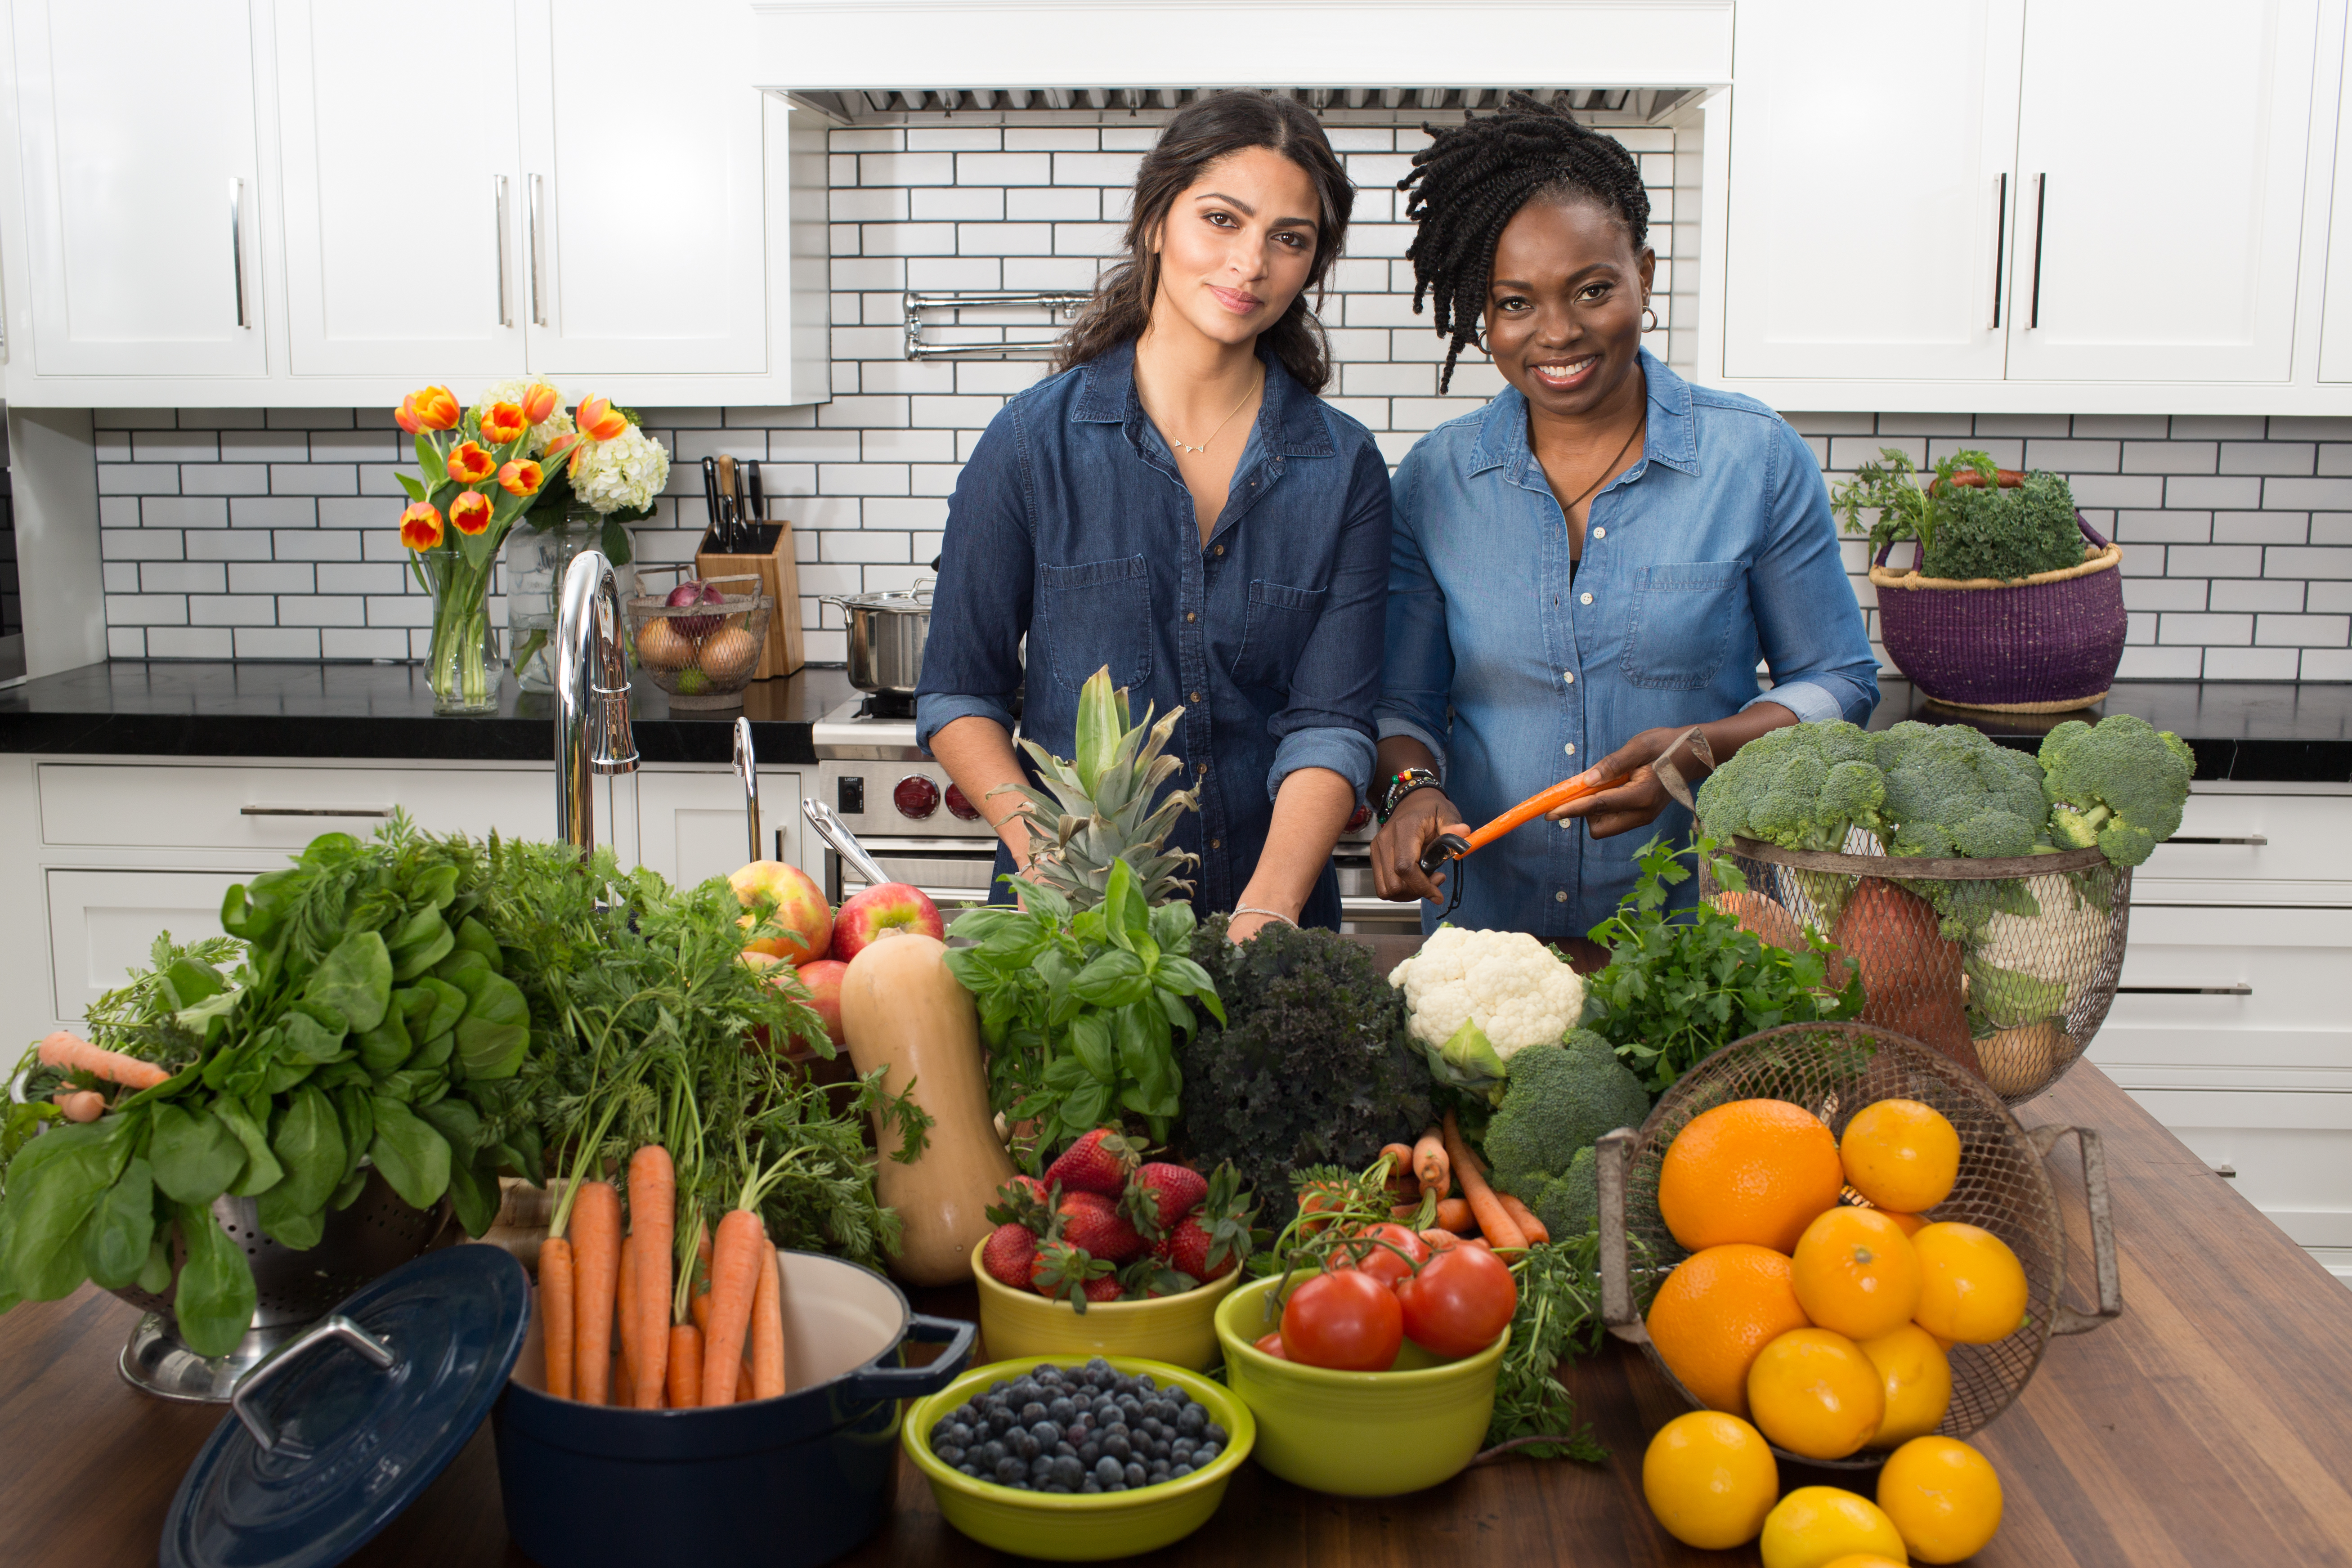 Yummy Spoonfuls co-founder Camila Alves (left) and founder Agatha Achindu (right) teamed up to take the baby food business national.